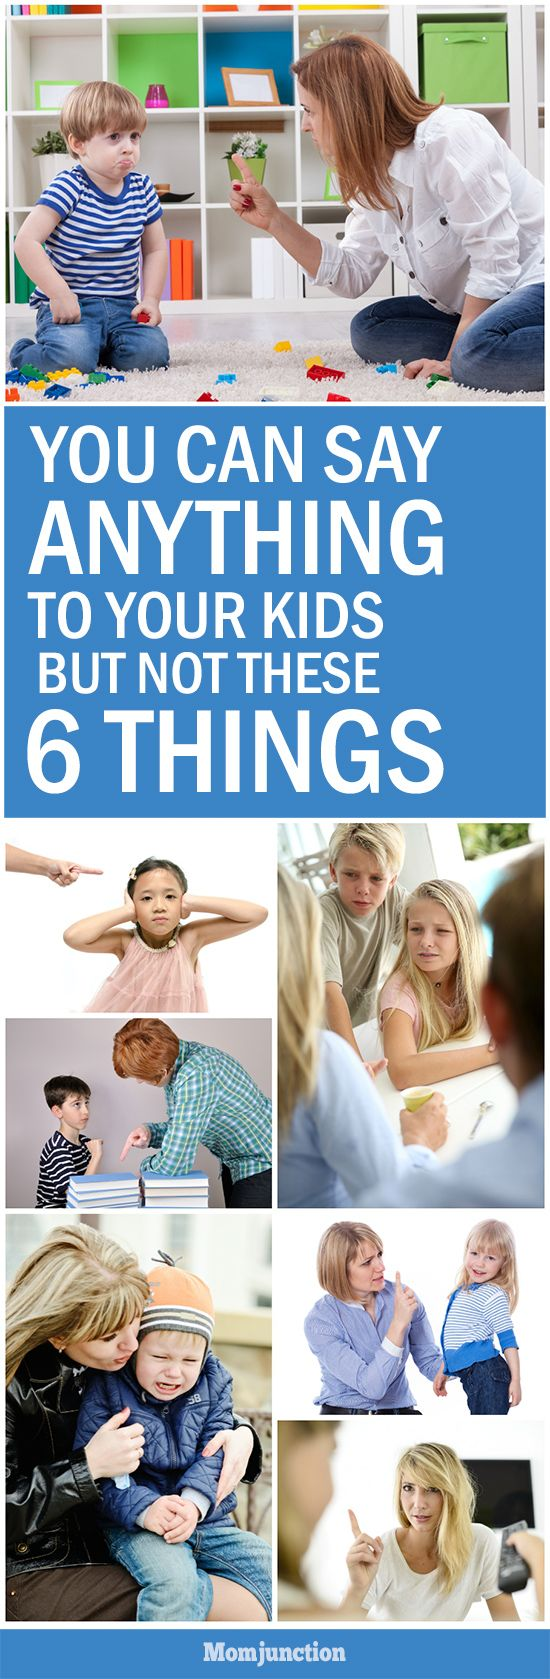 Isn't driving a point home one of the trickiest things to do when you talk to your children? Clichéd words and principles will never make them understand what you try to tell them or what you expect of them.